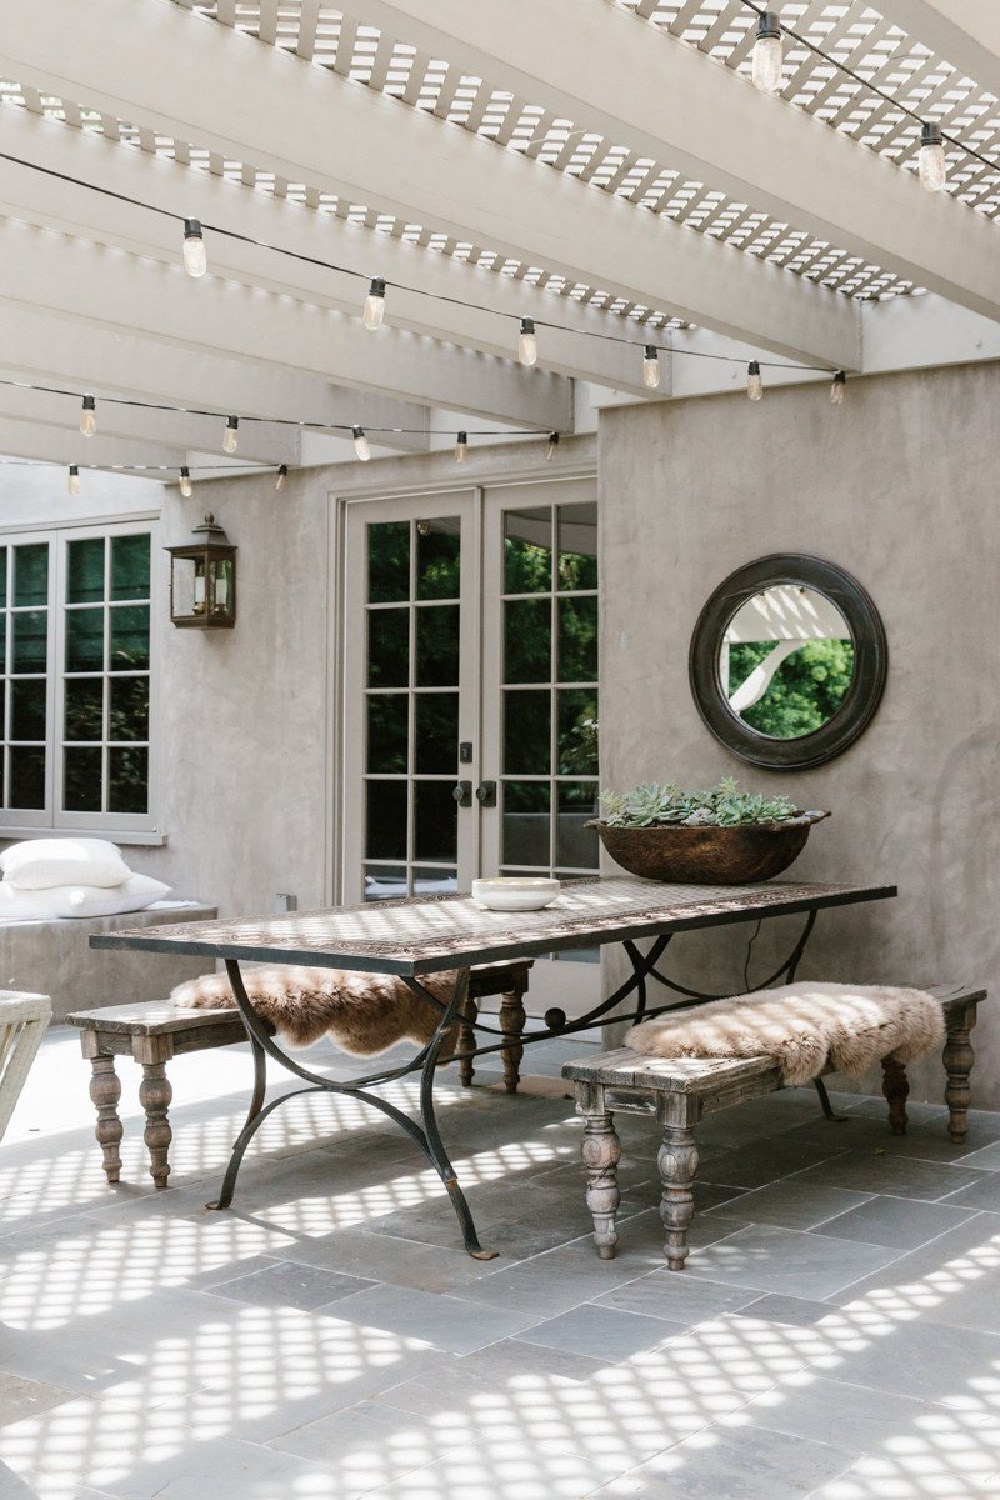 Erin Fetherston outdoor dining area with rustic benches and pergola. Come explore California modern farmhouse style and score ideas to get the look!